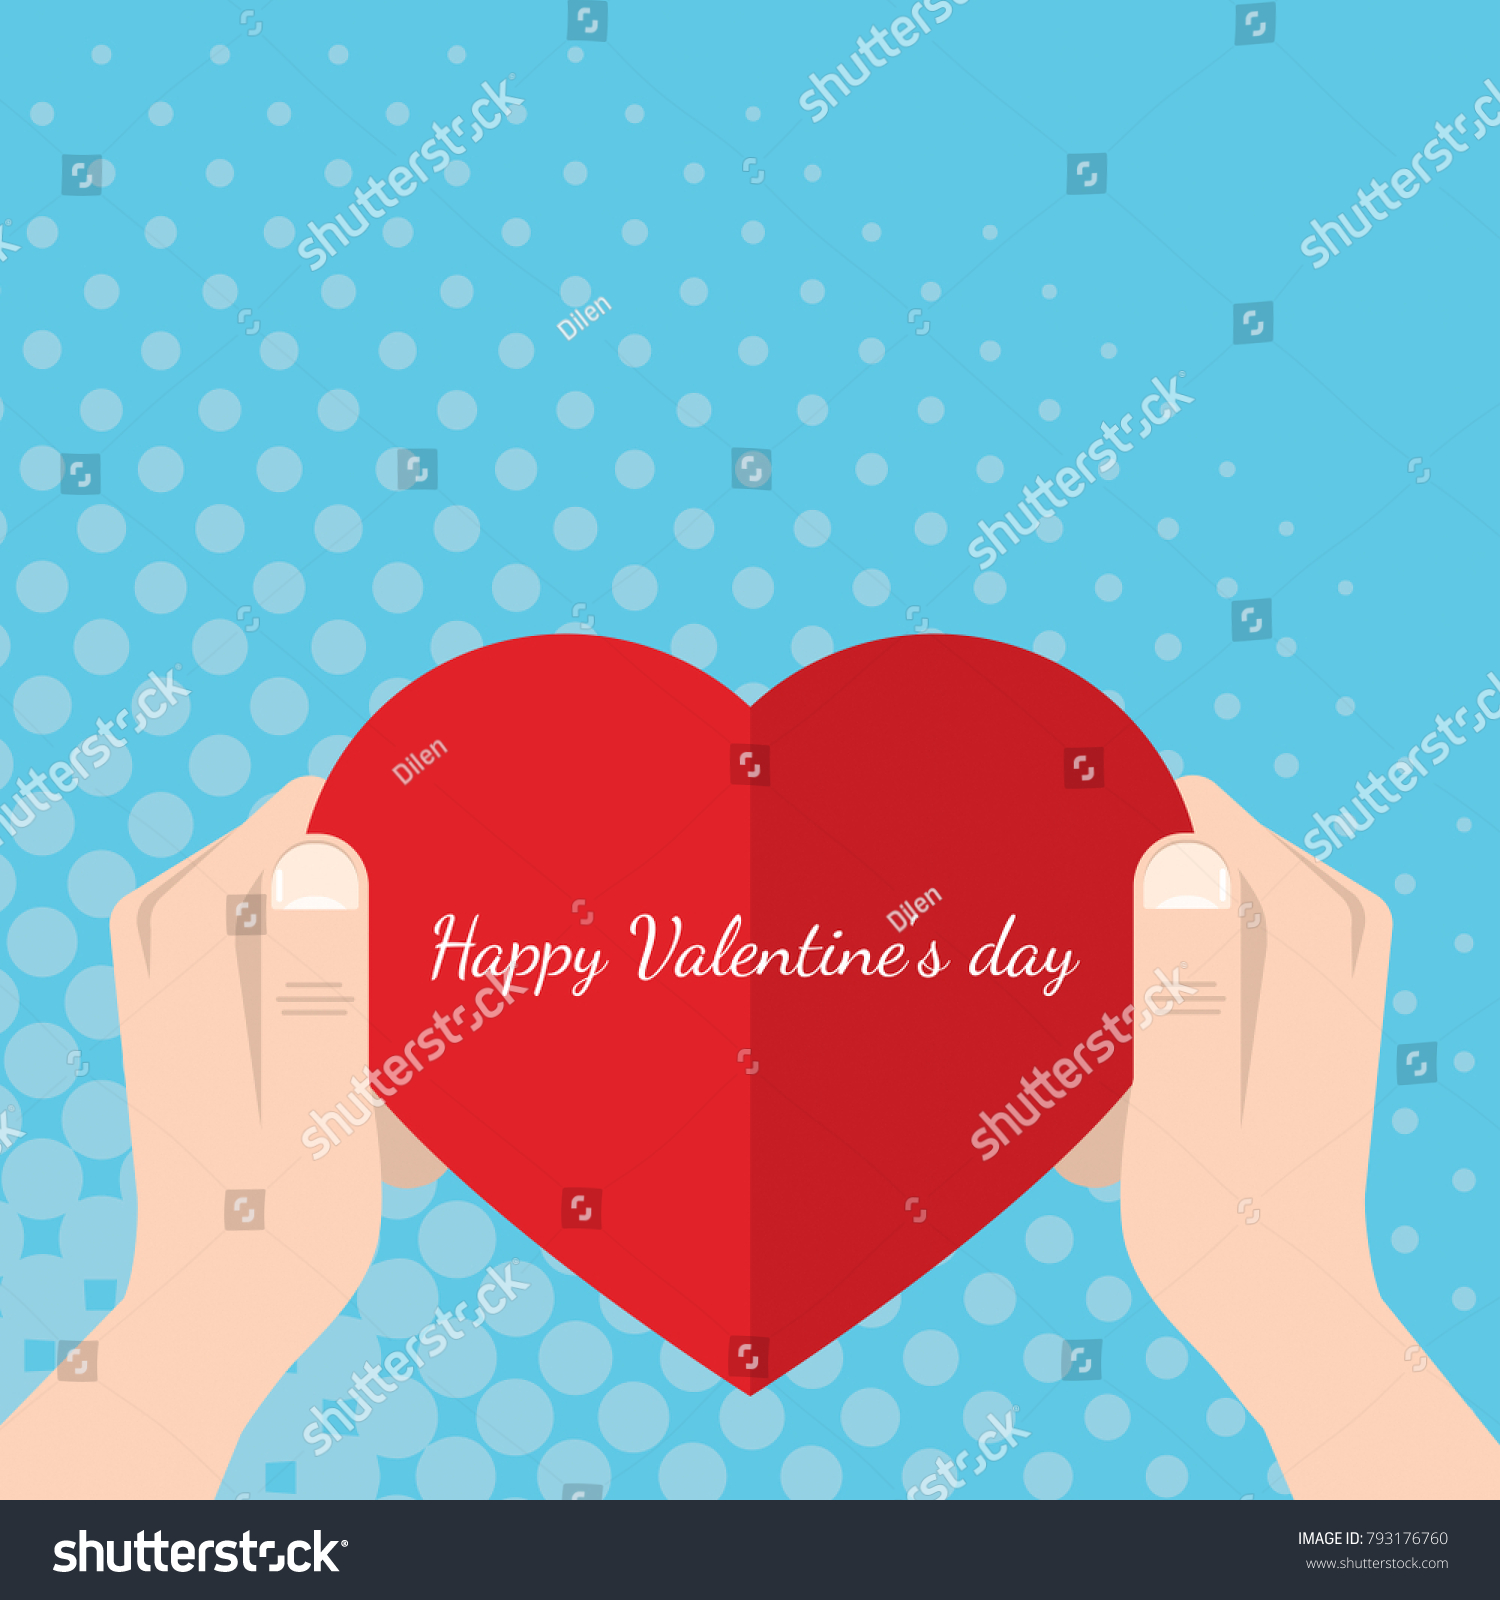 Happy valentines day valentines heartshaped greeting stock happy valentines day valentines heart shaped greeting card in m4hsunfo